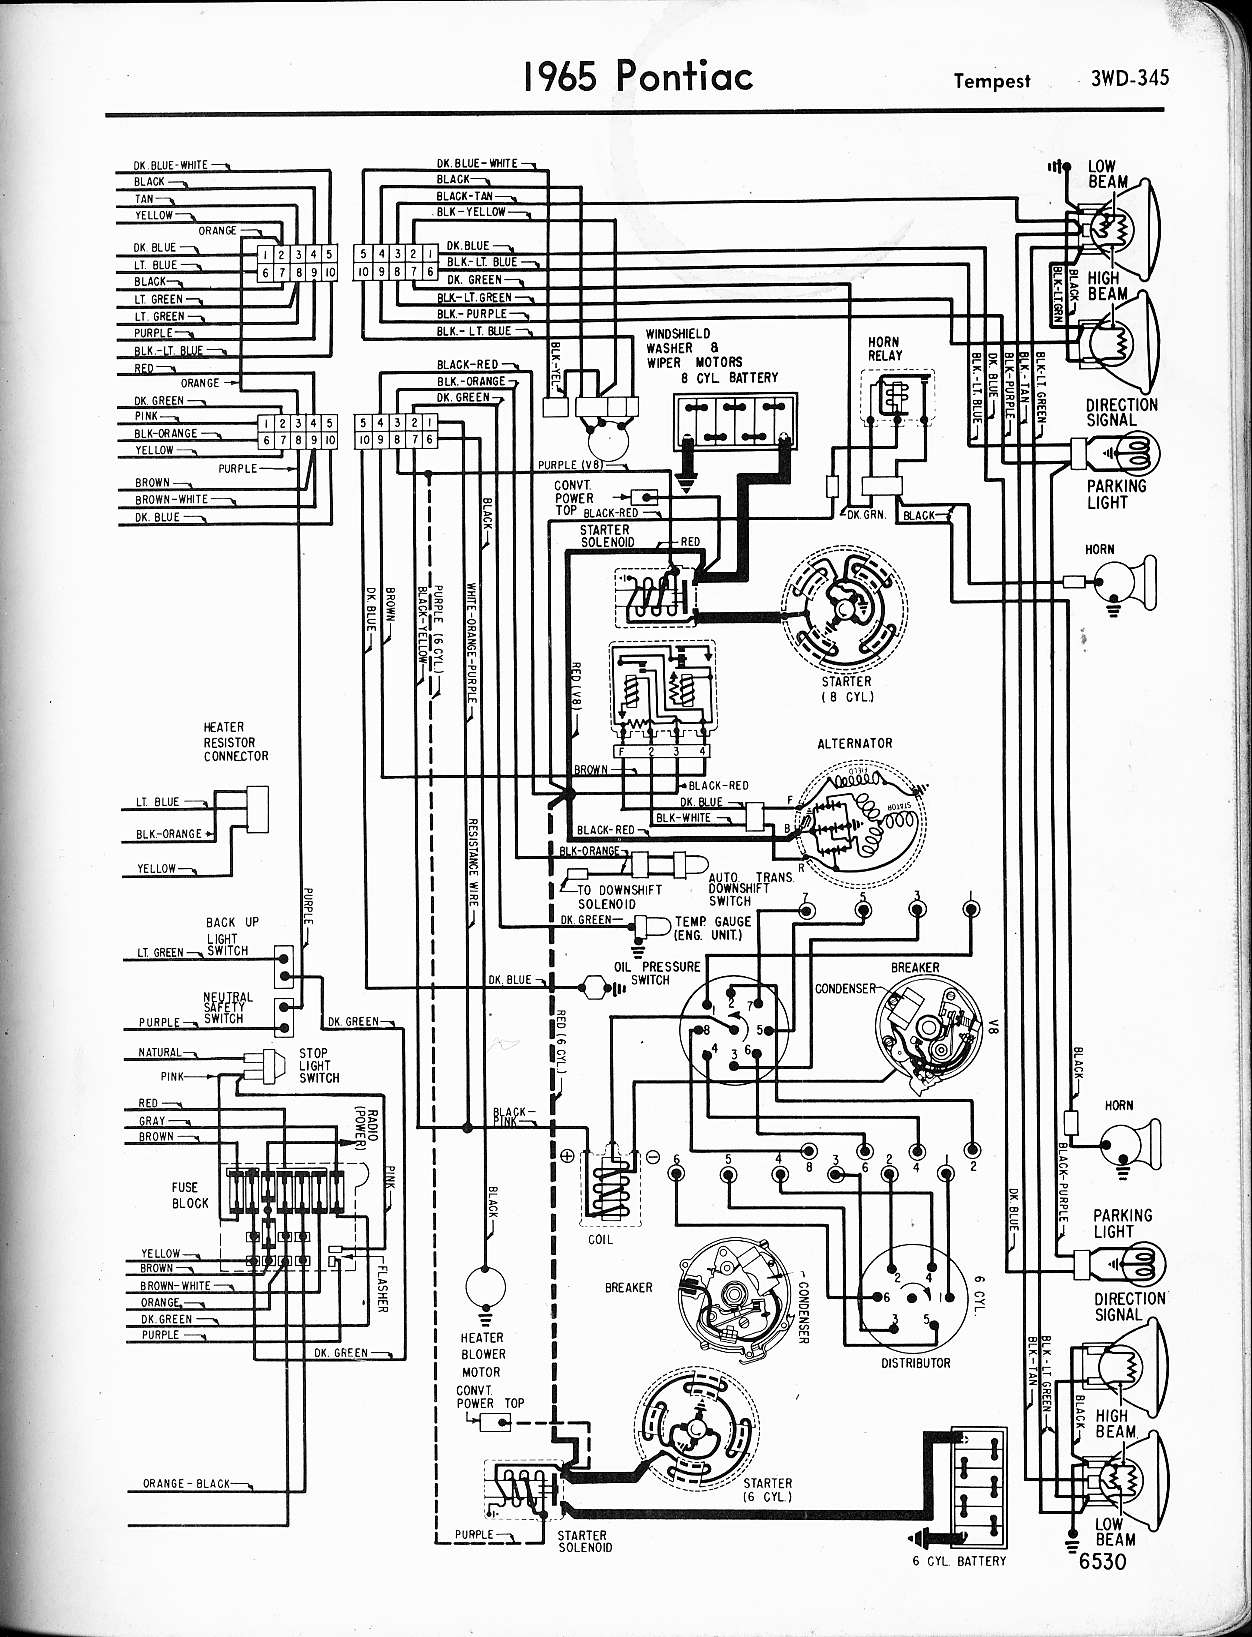 67 pontiac tach wiring diagram trusted wiring diagrams u2022 rh sivamuni com